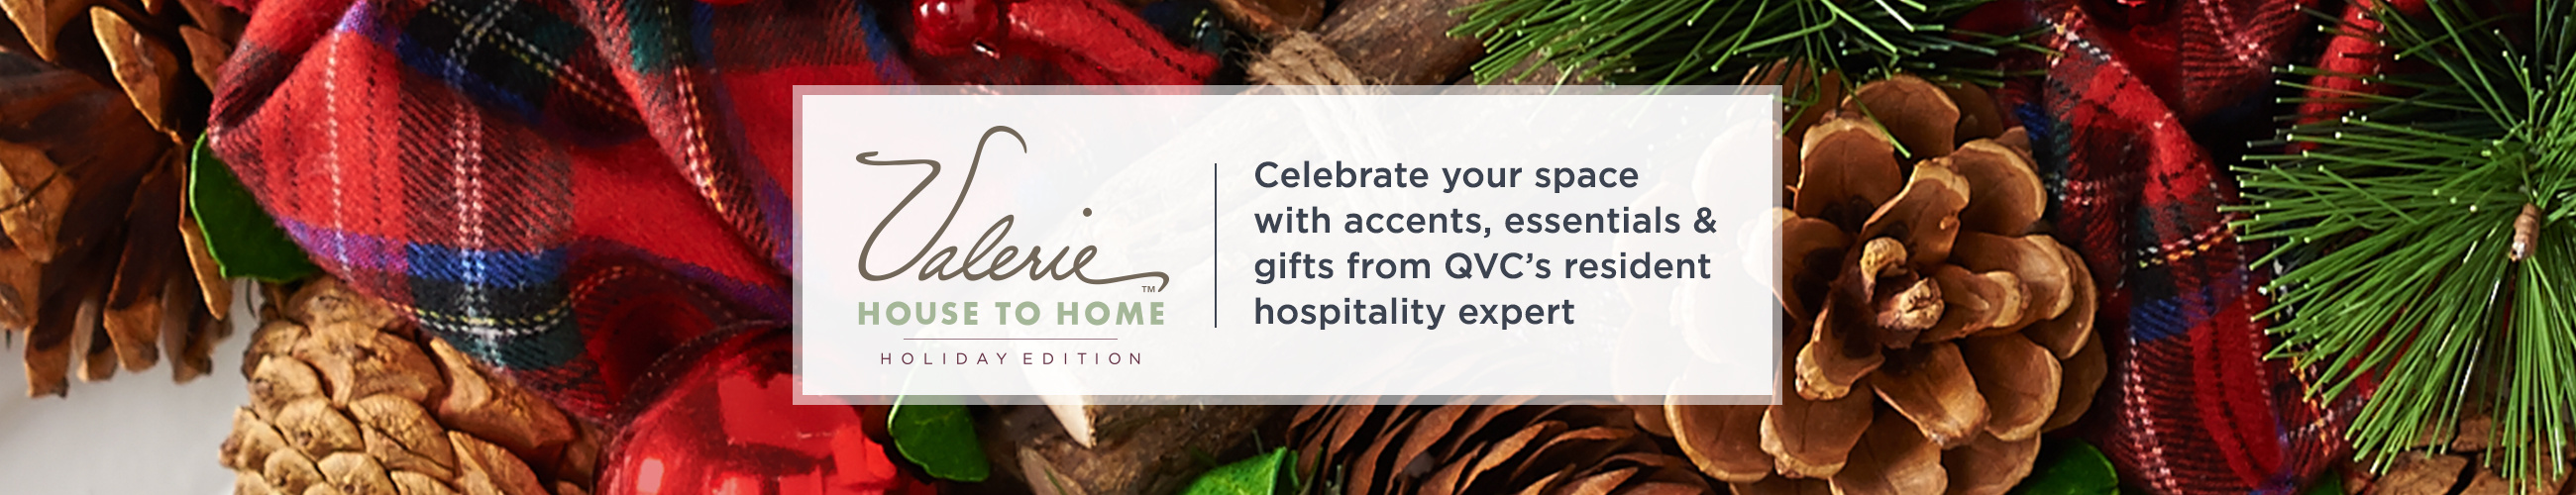 Valerie House to Home Holiday Edition - Celebrate your space with accents, essentials & gifts from QVC's resident hospitality expert